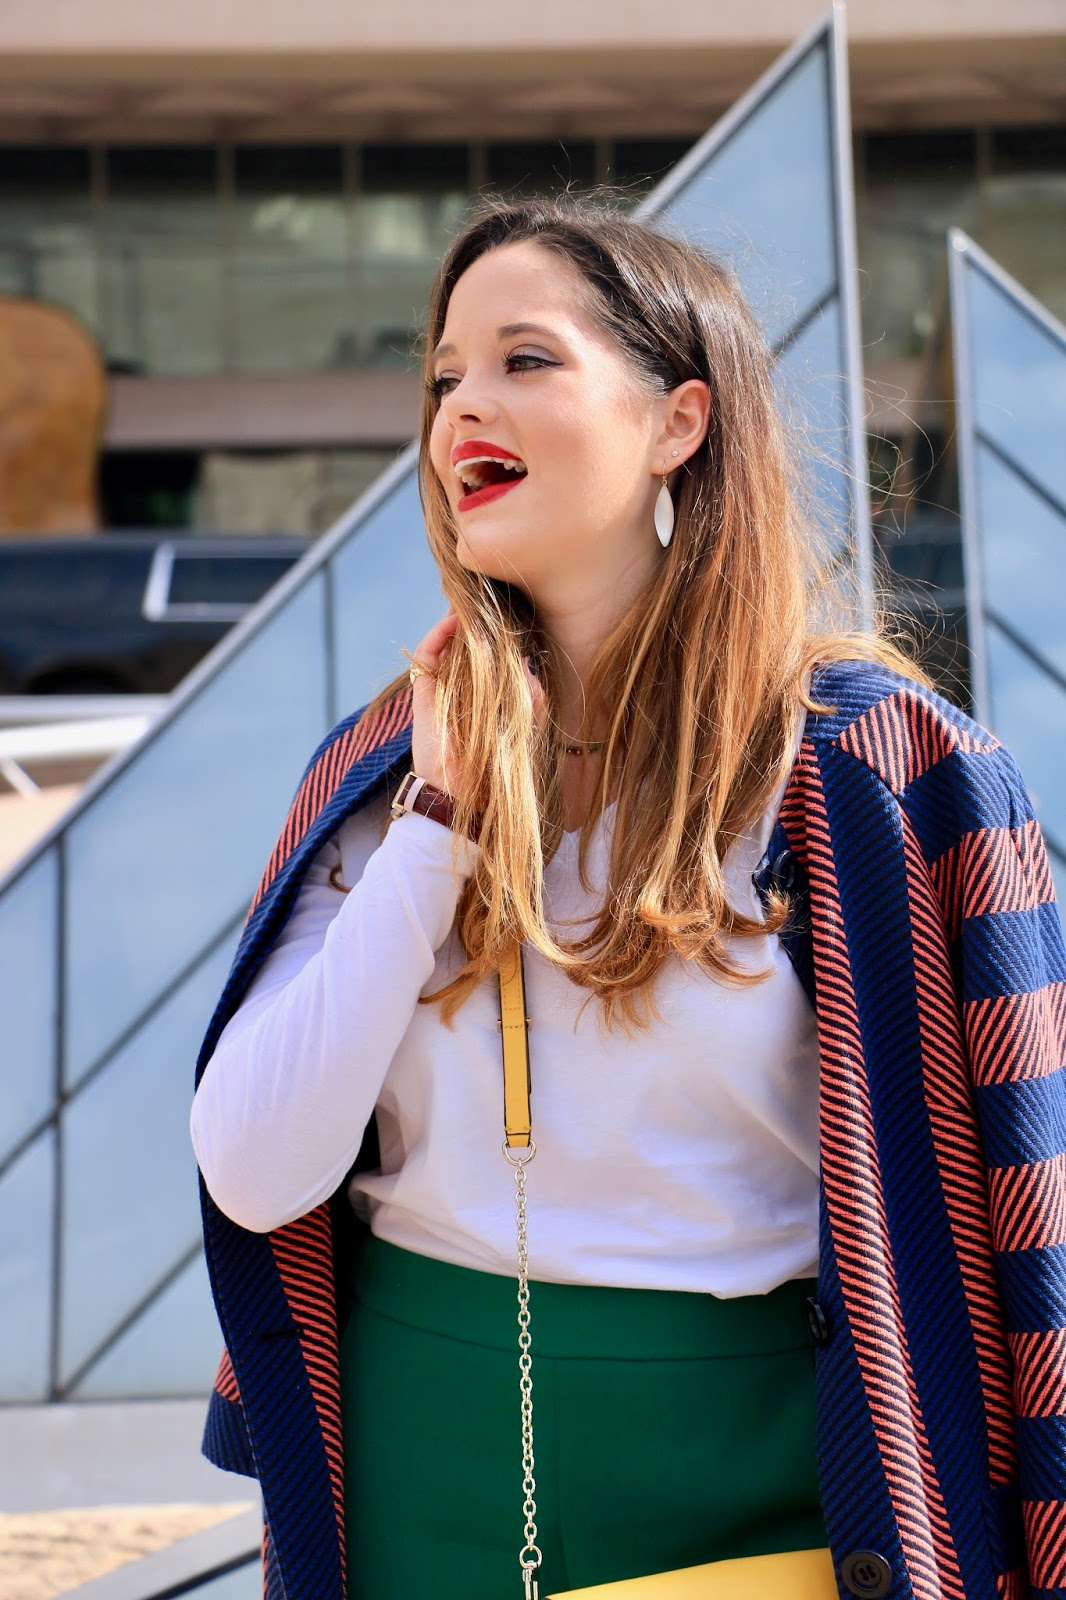 Nyc fashion blogger Kathleen Harper showing how to wear color